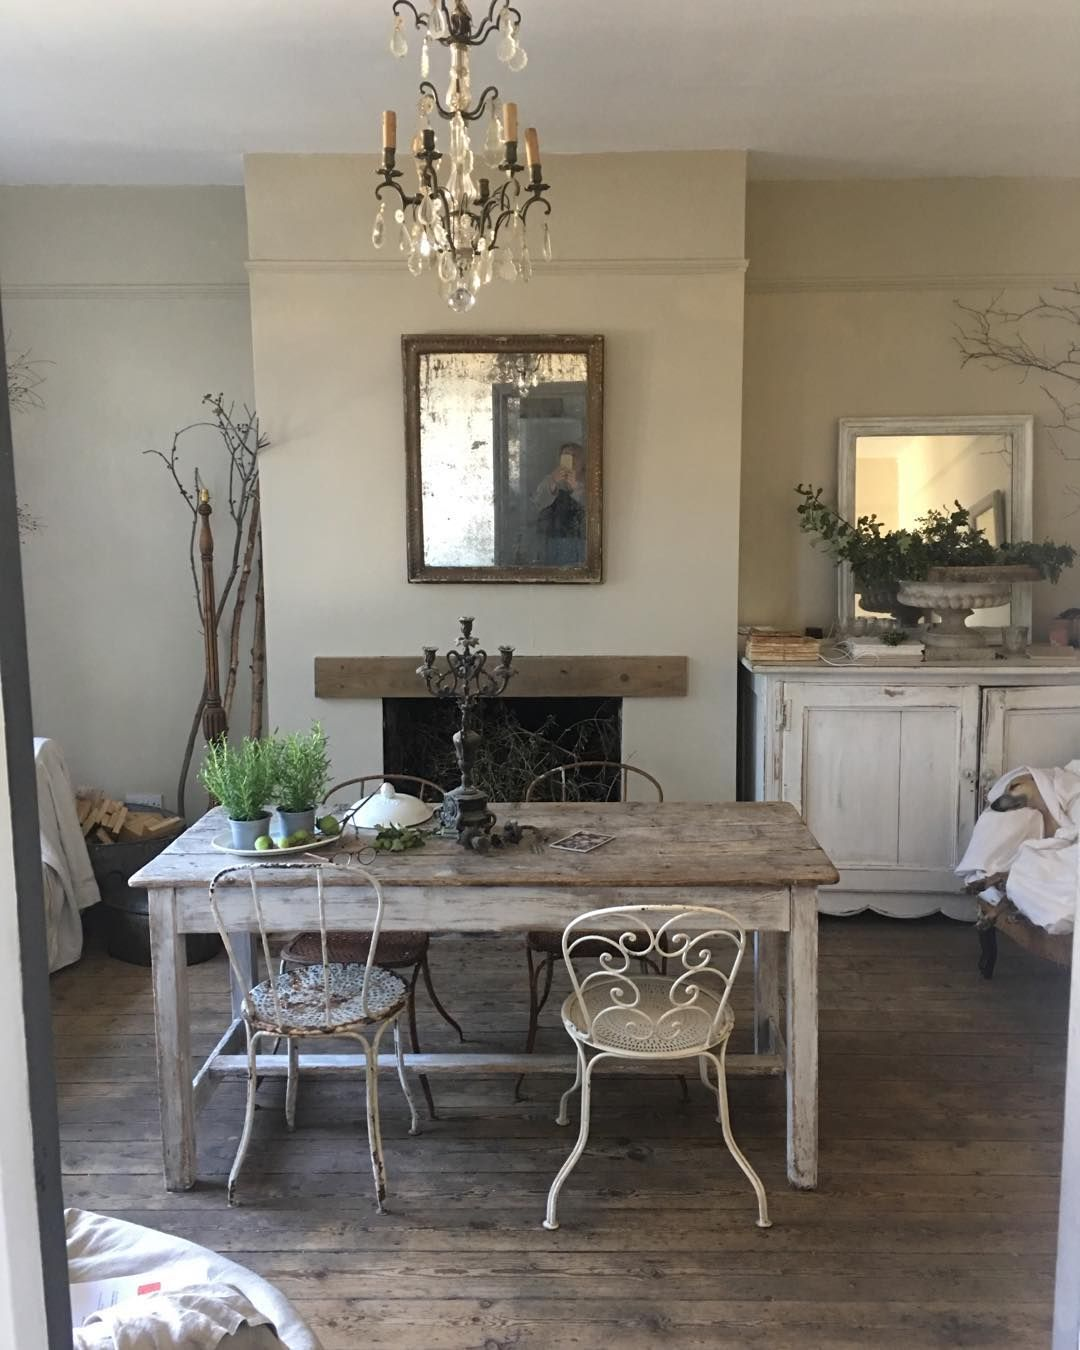 "Photo of Hello on Instagram: ""Calm styling relaxed interiors #styling #stylists #natural #naturalhome #antiques #decorative #mutedcolours #foxedmirrors #chandeliers"""